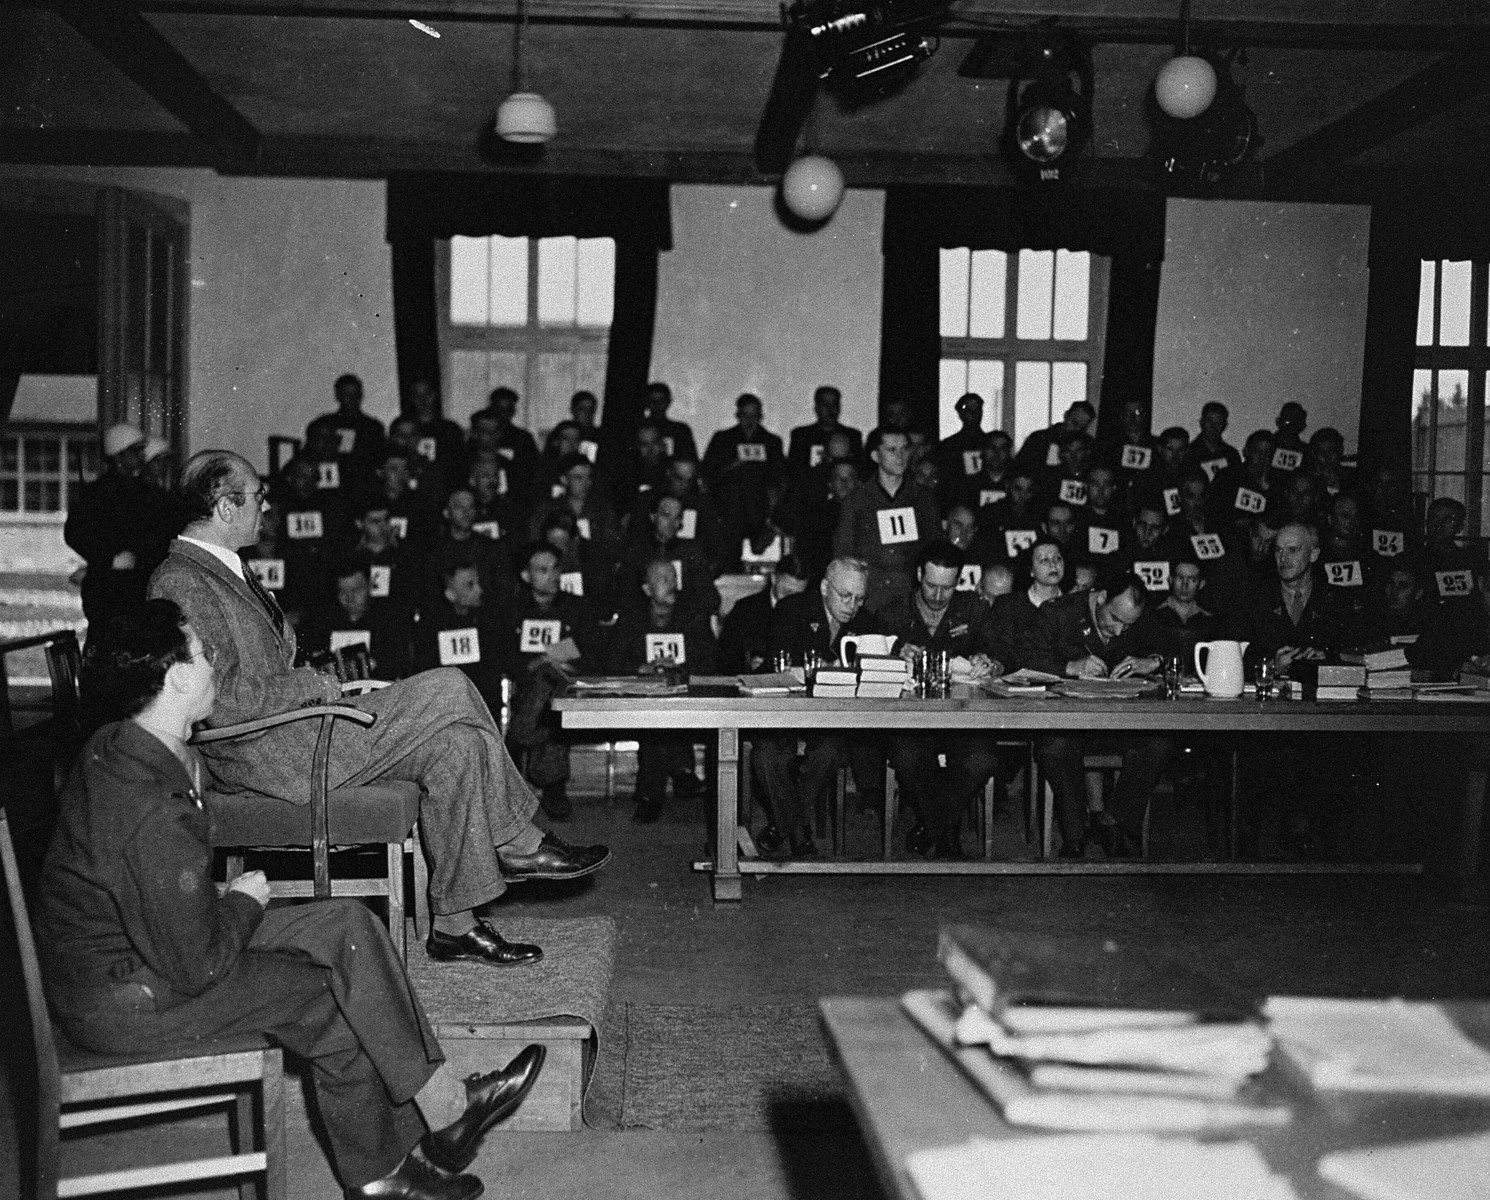 A witness testifies at the trial of 61 former camp personnel and prisoners from Mauthausen.  The man standing in the background is defendant Willy Eckert, a member of the SS.